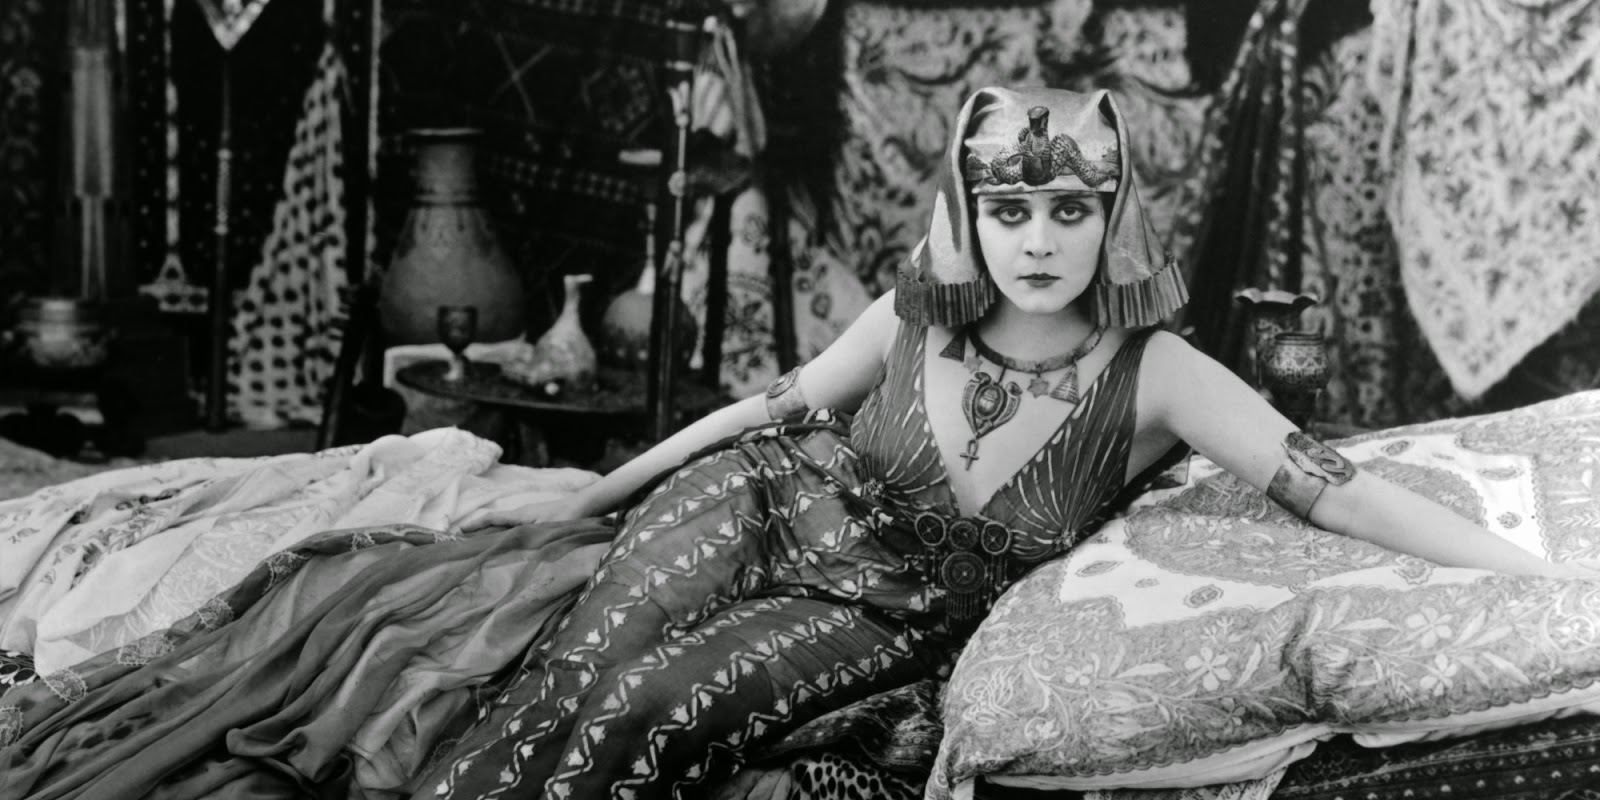 Theda Bara as Cleopatra, 1917, a lost film.